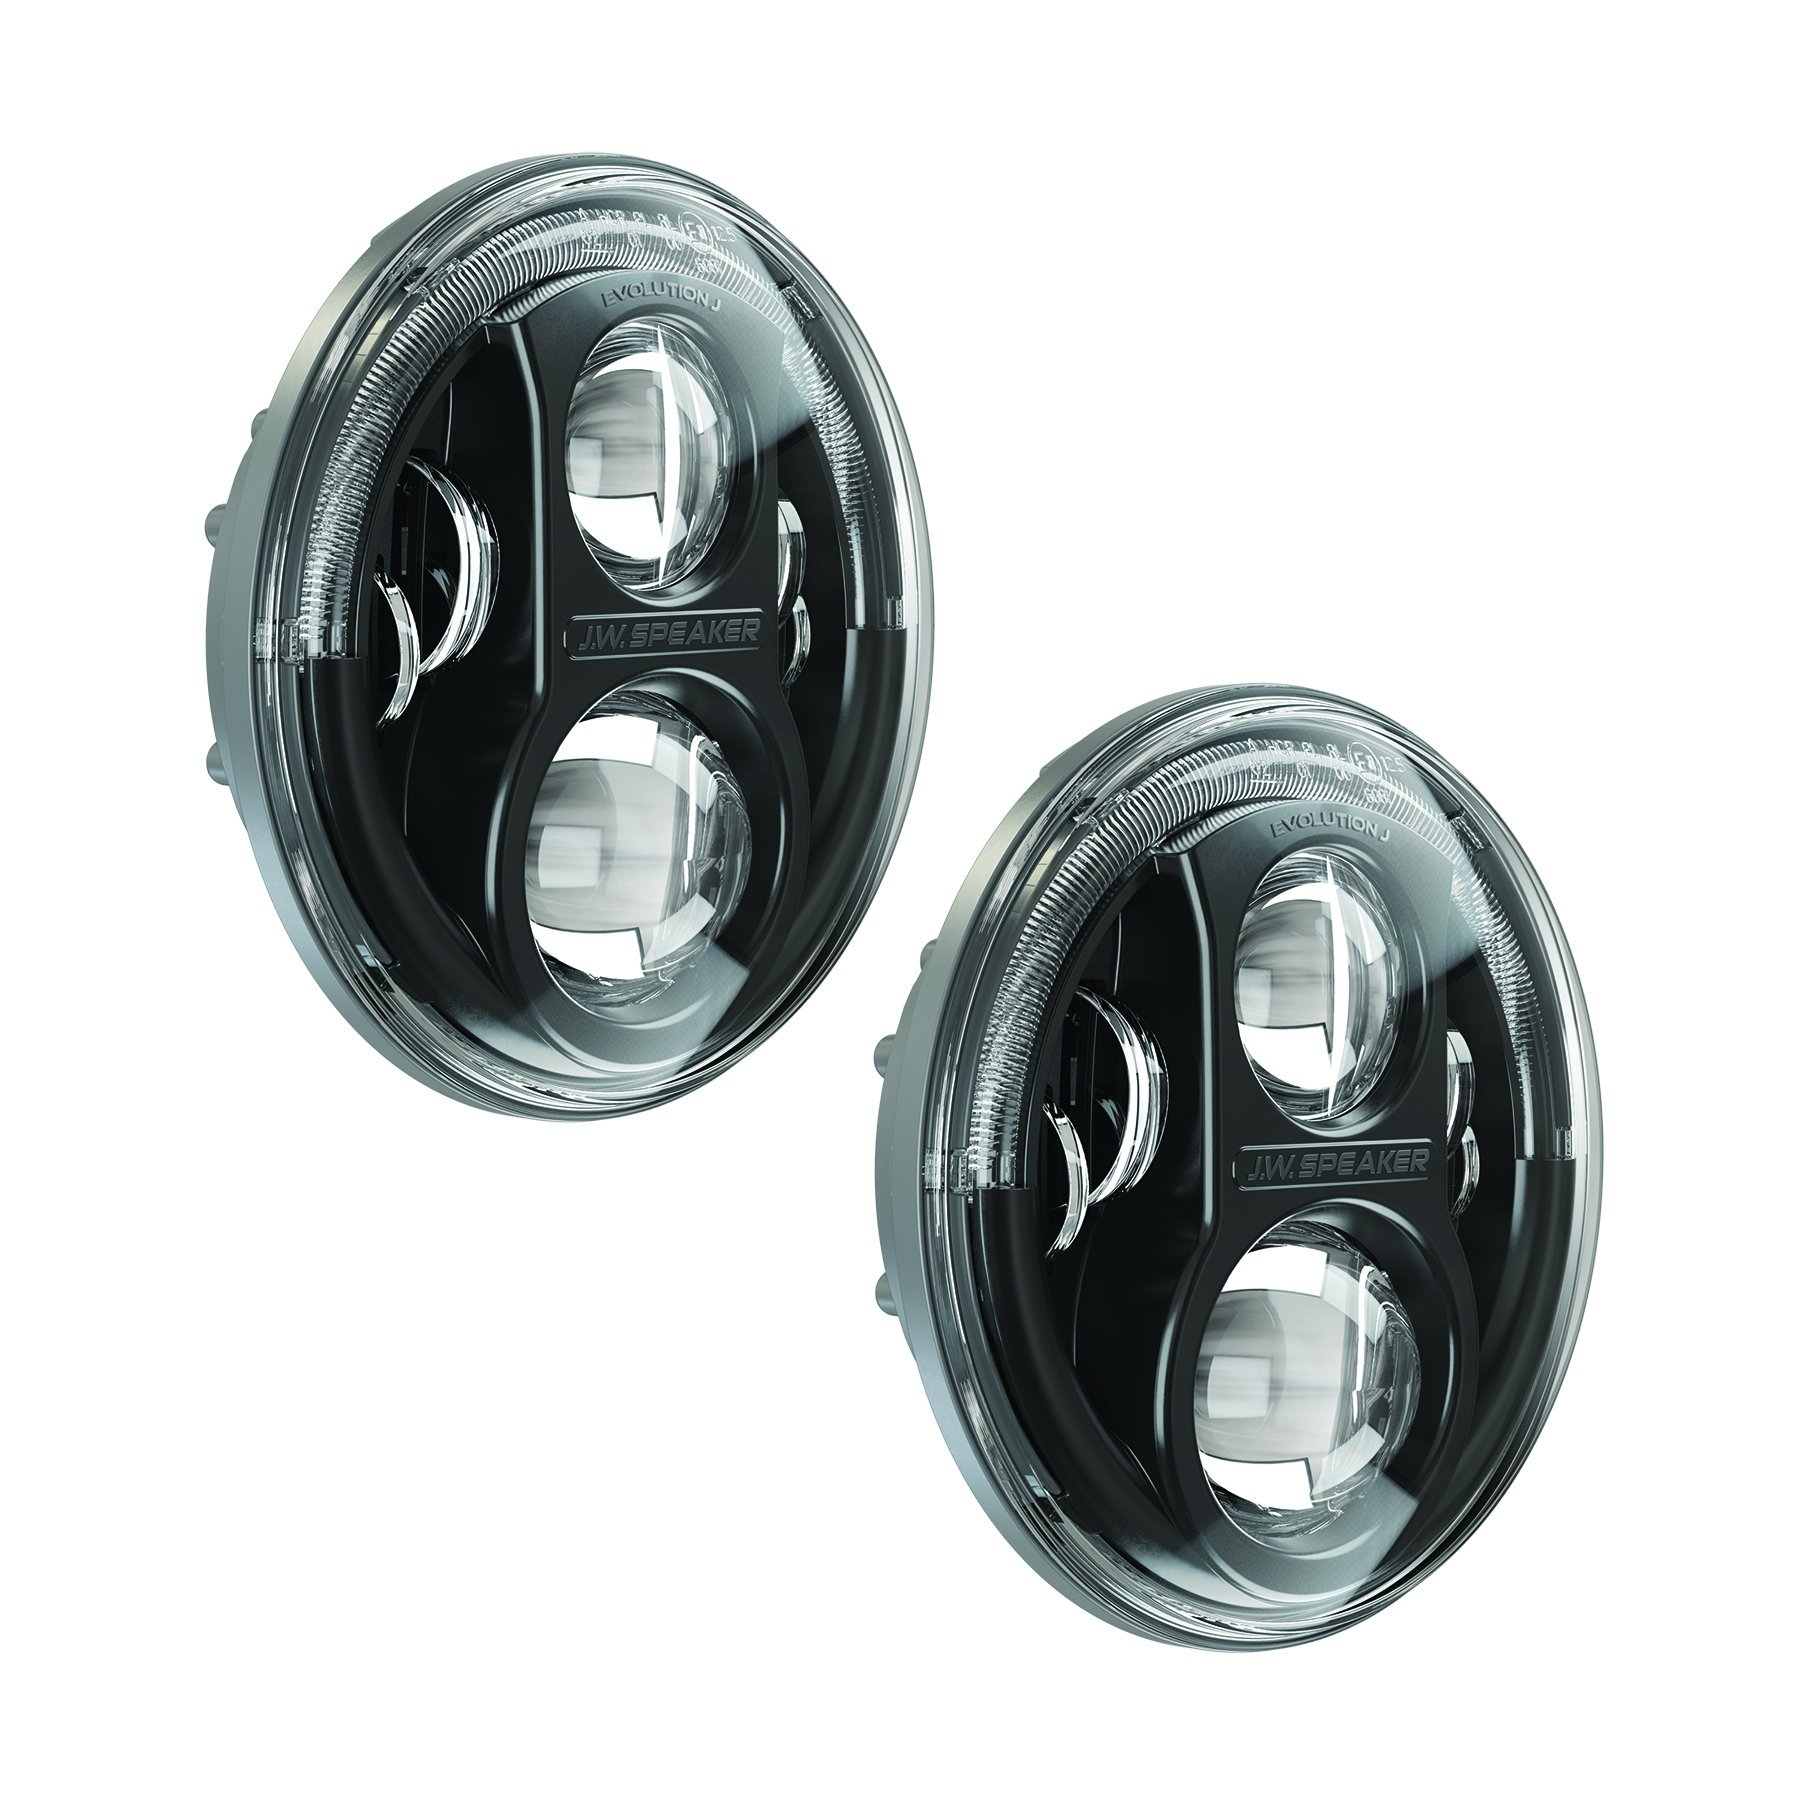 Galleon Jw Speaker 8700j B Black Led Headlight Set Of 2